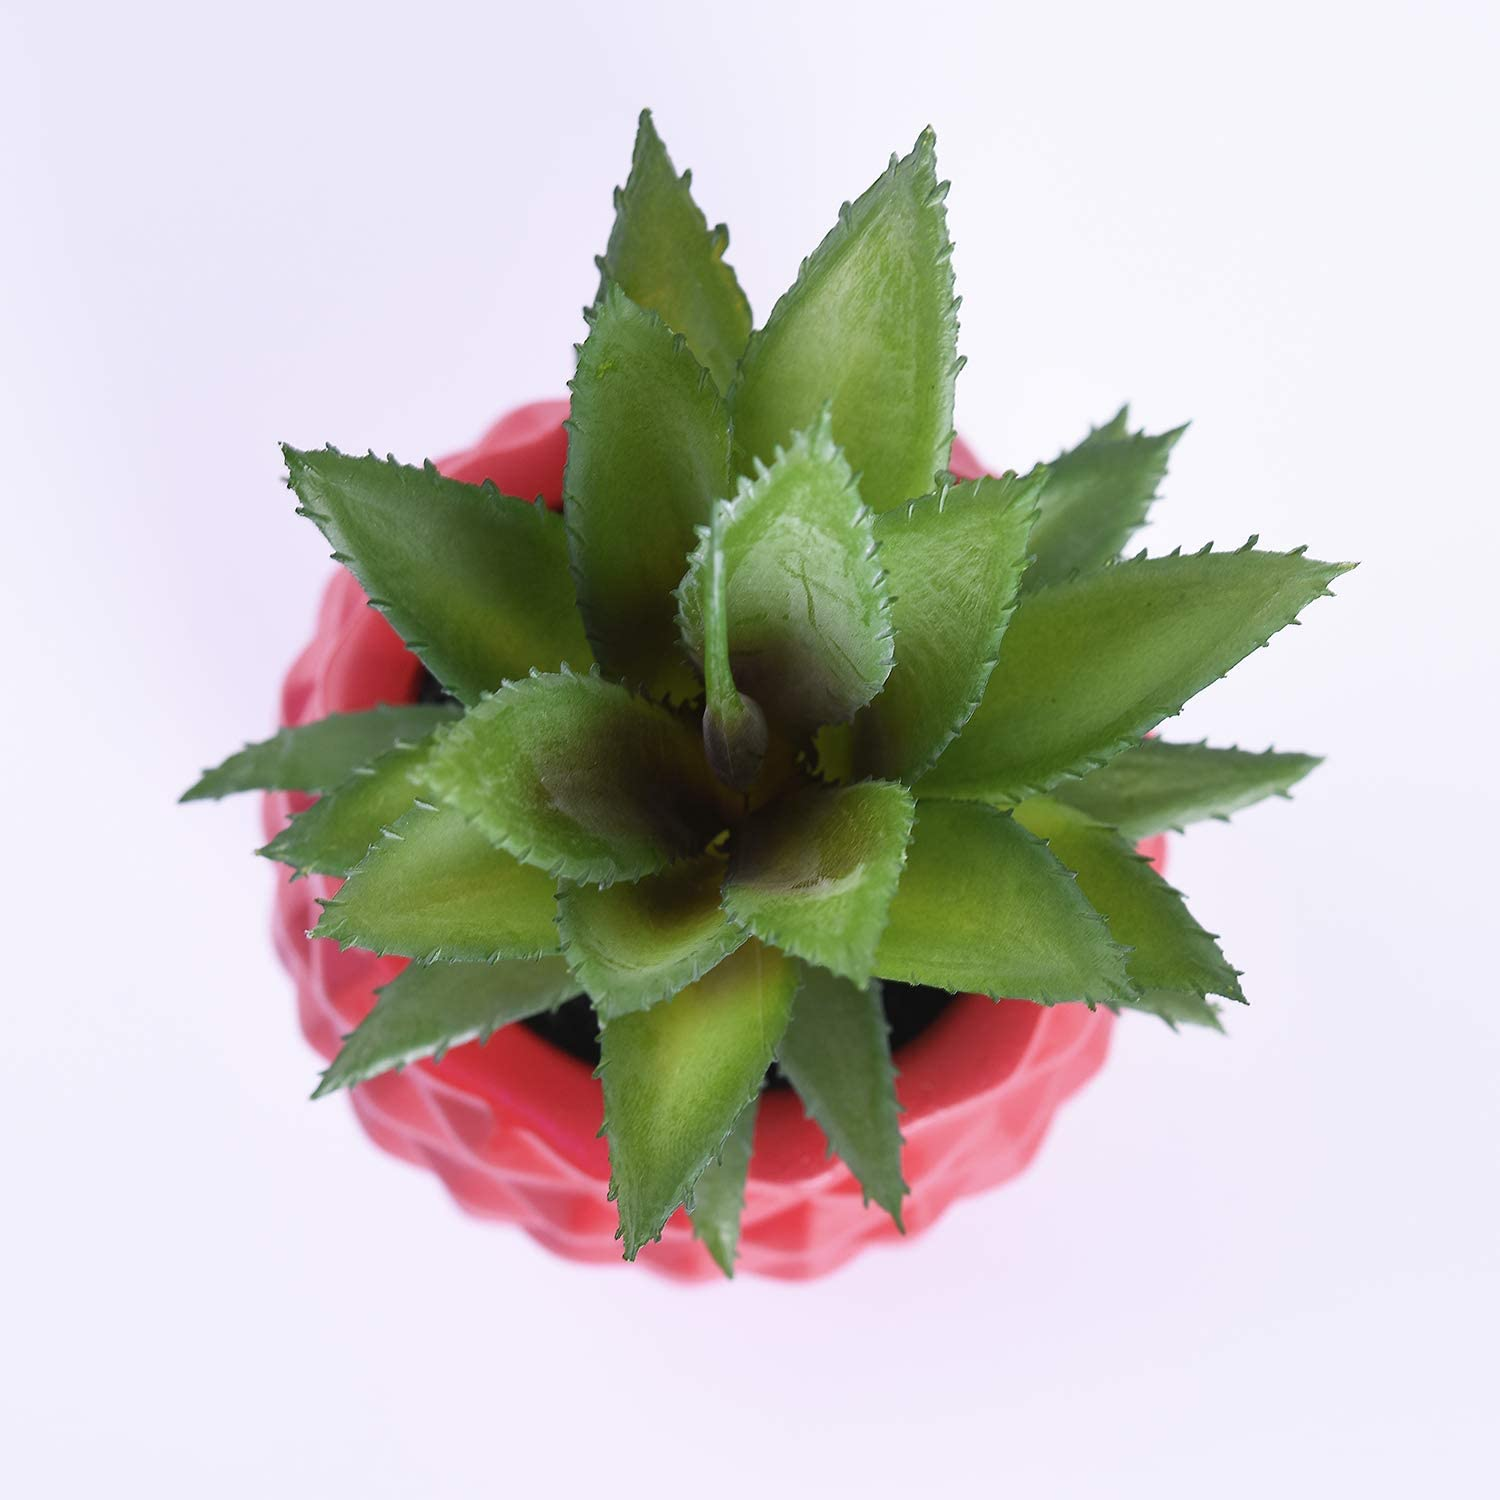 Lvydec Potted Artificial Succulent Decoration Gold Fake Pineapple Plant for Home Office Tabletop Decoration